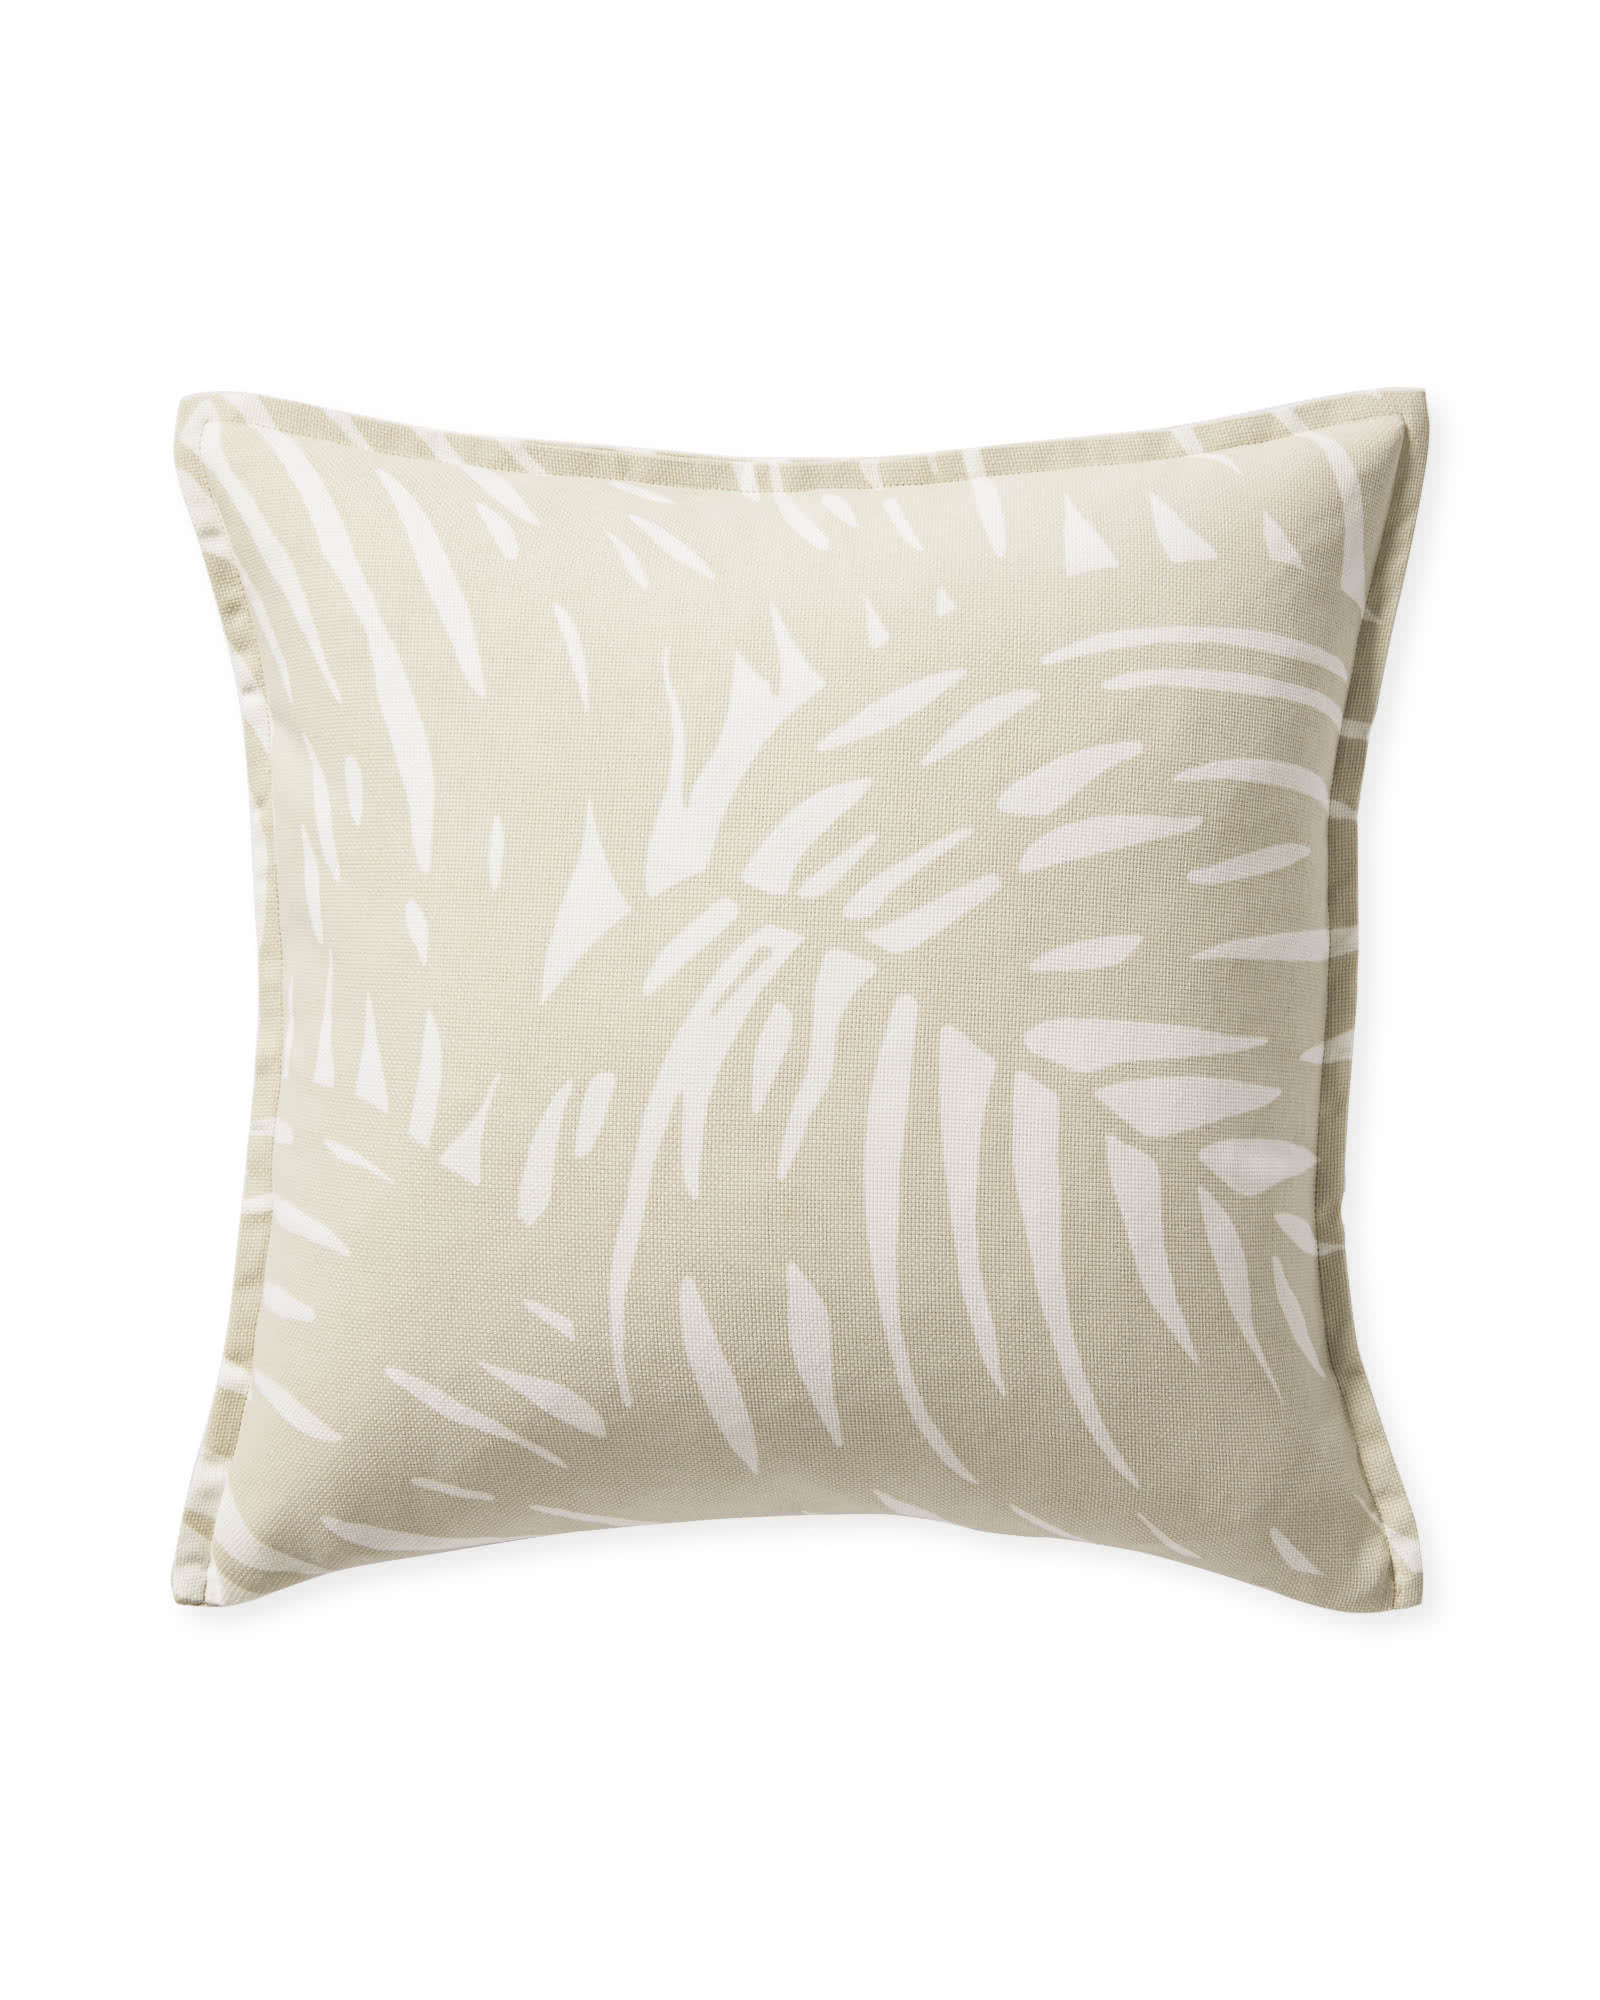 Palm Outdoor Pillow Cover, Sand